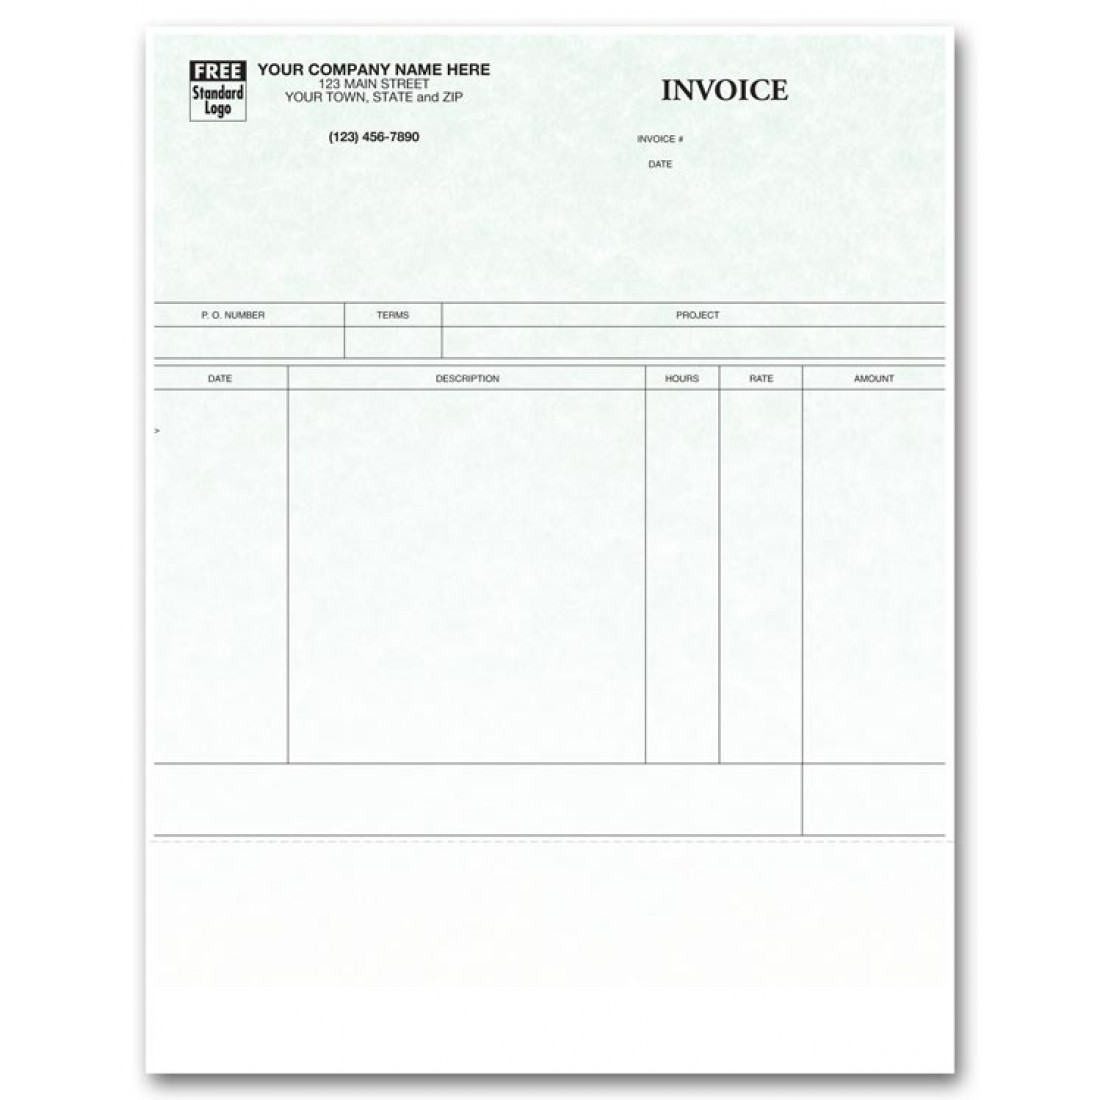 Laser Service Invoice for ProVenture Parchment | Free Shipping